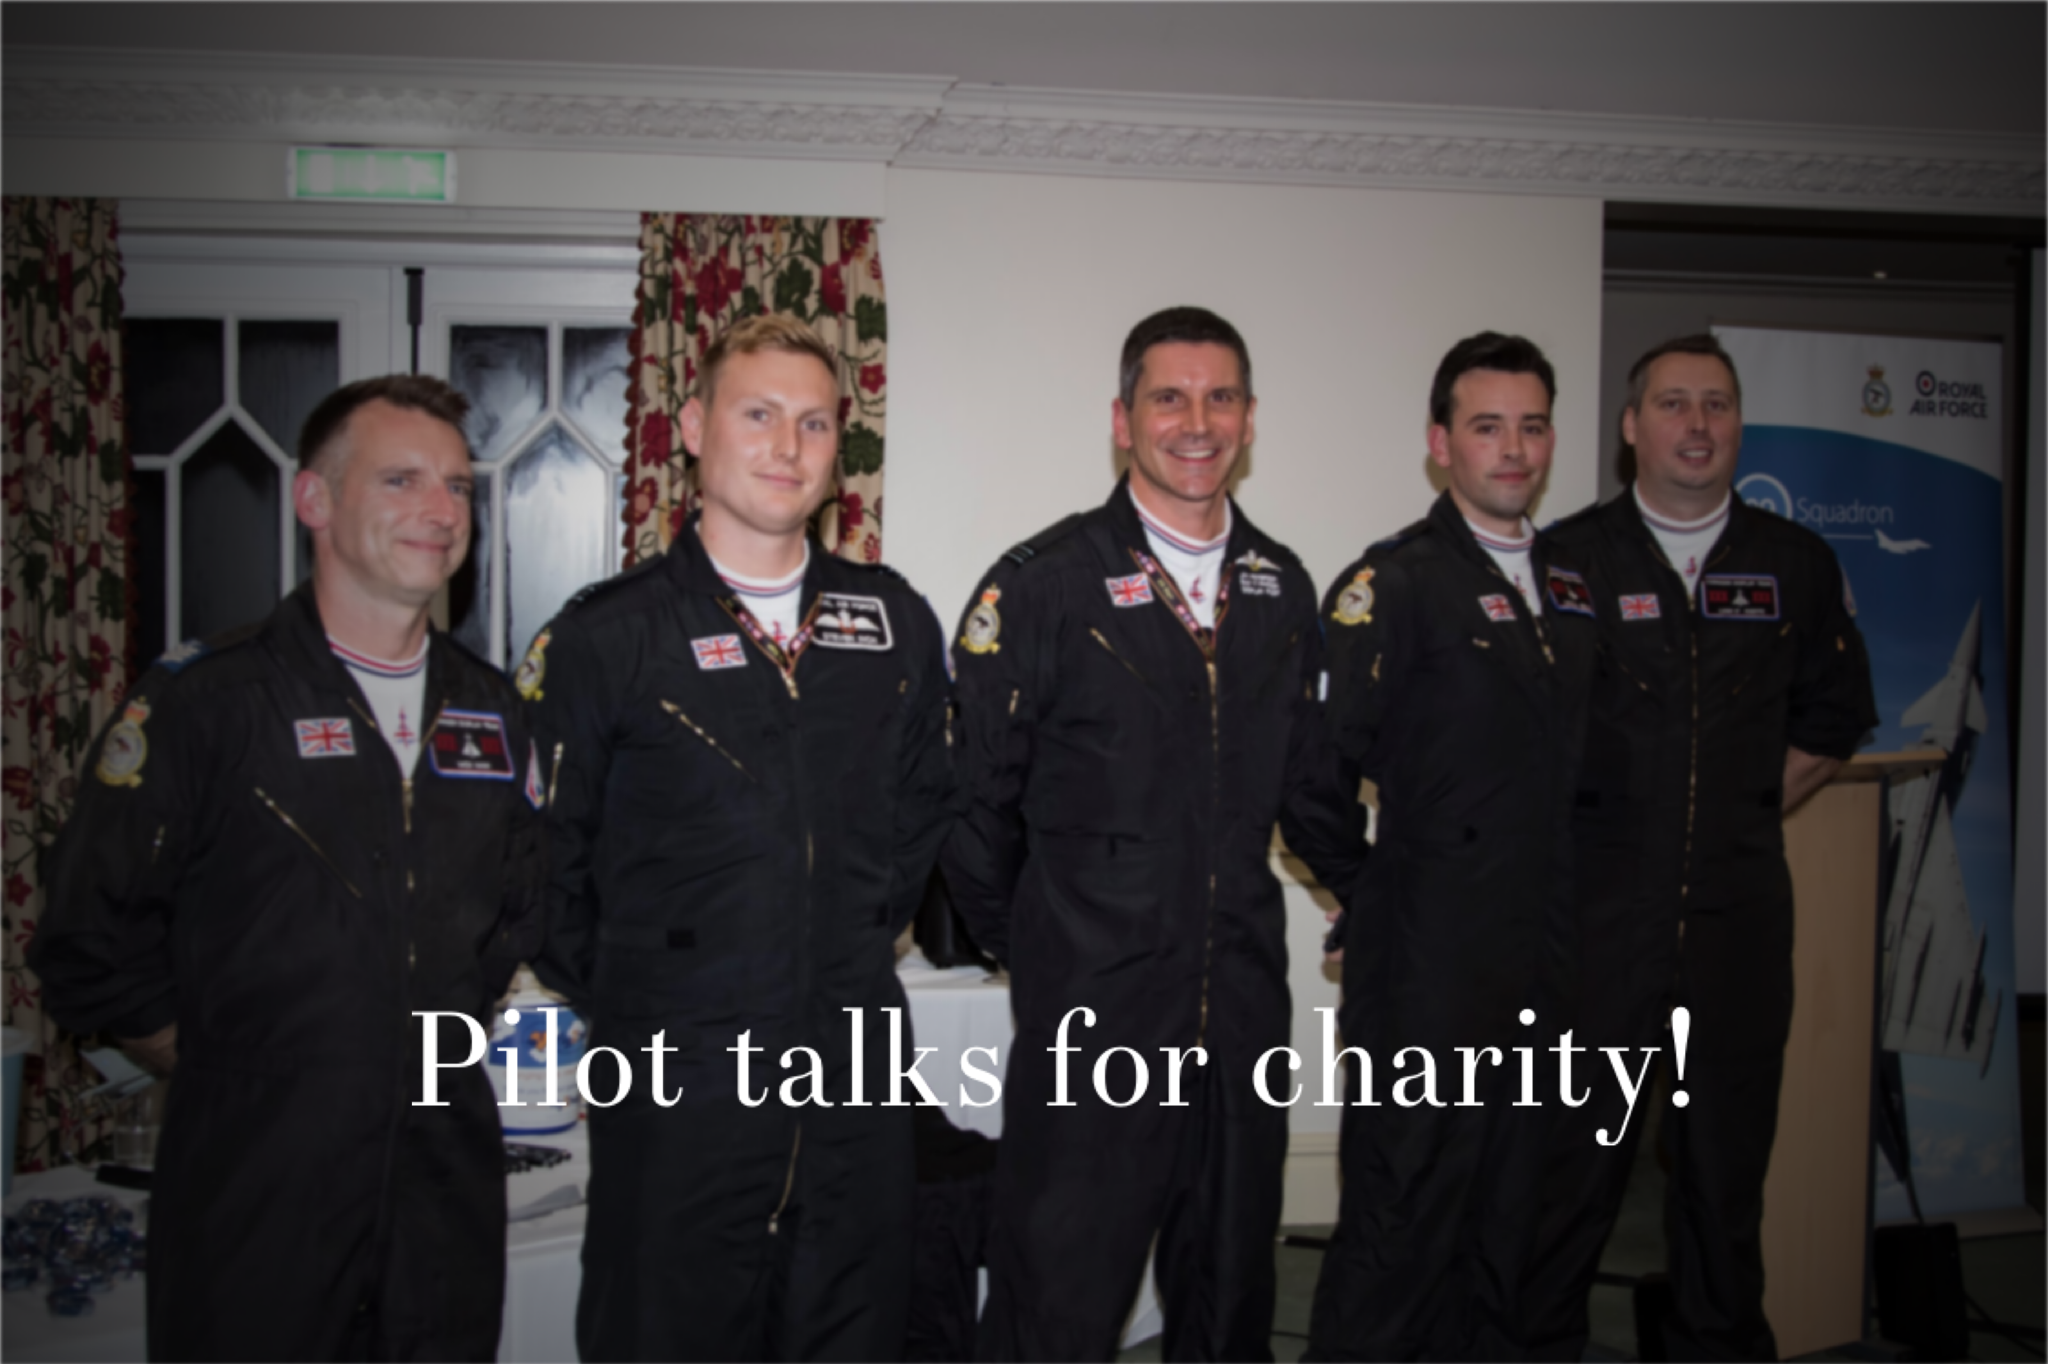 Pilot Talks Support Chosen Charities